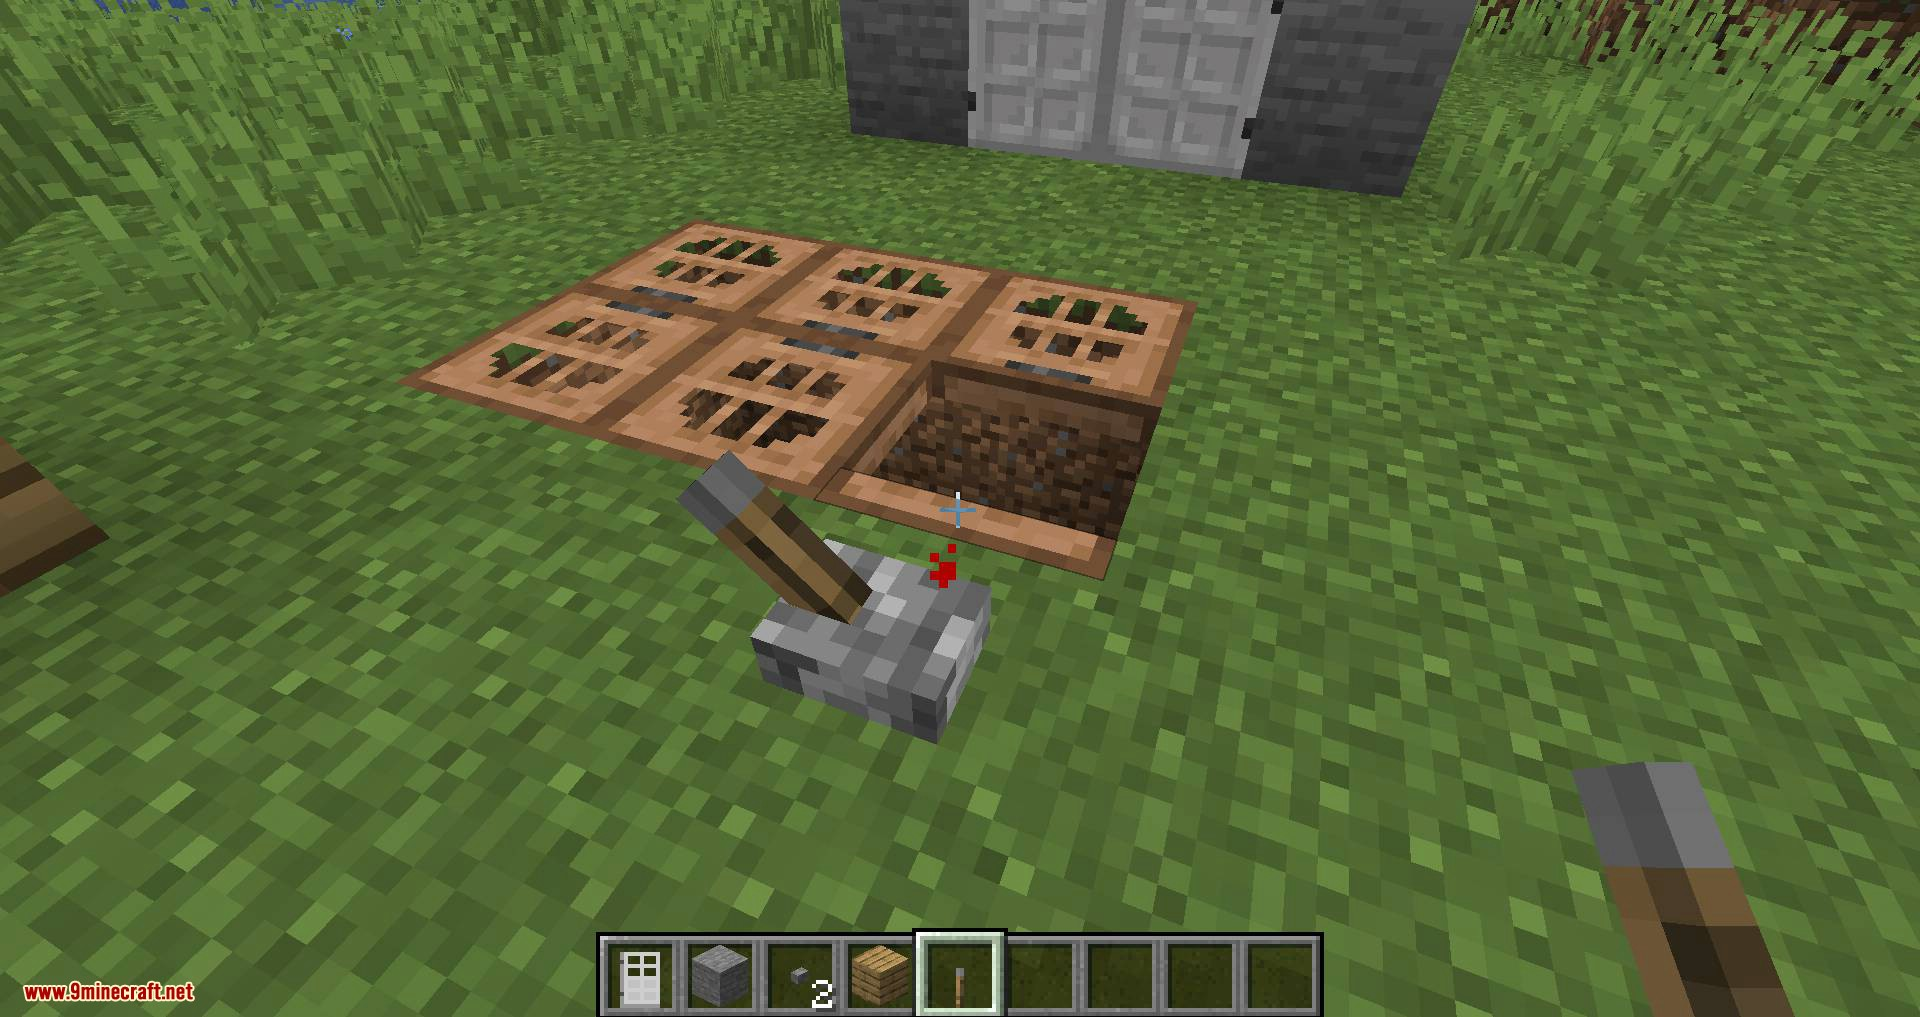 Couplings mod for minecraft 11